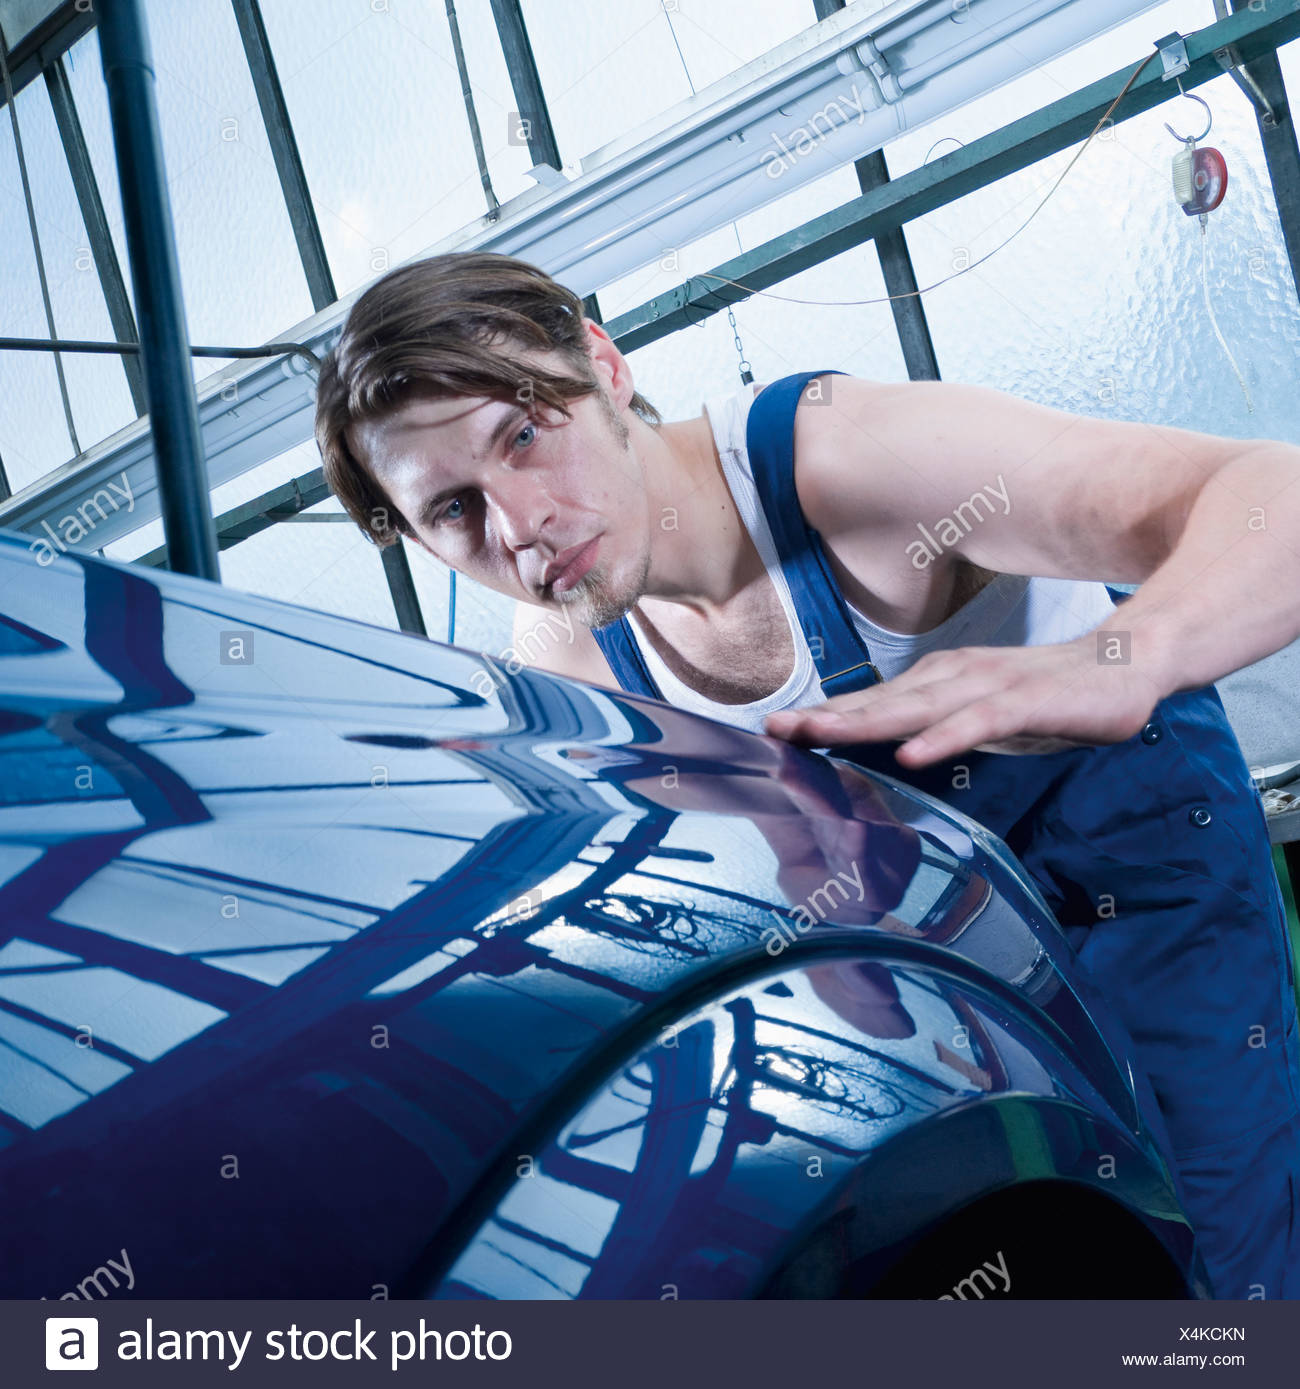 Germany, Augsburg, Worker looking at shiny car after waxing - Stock Image